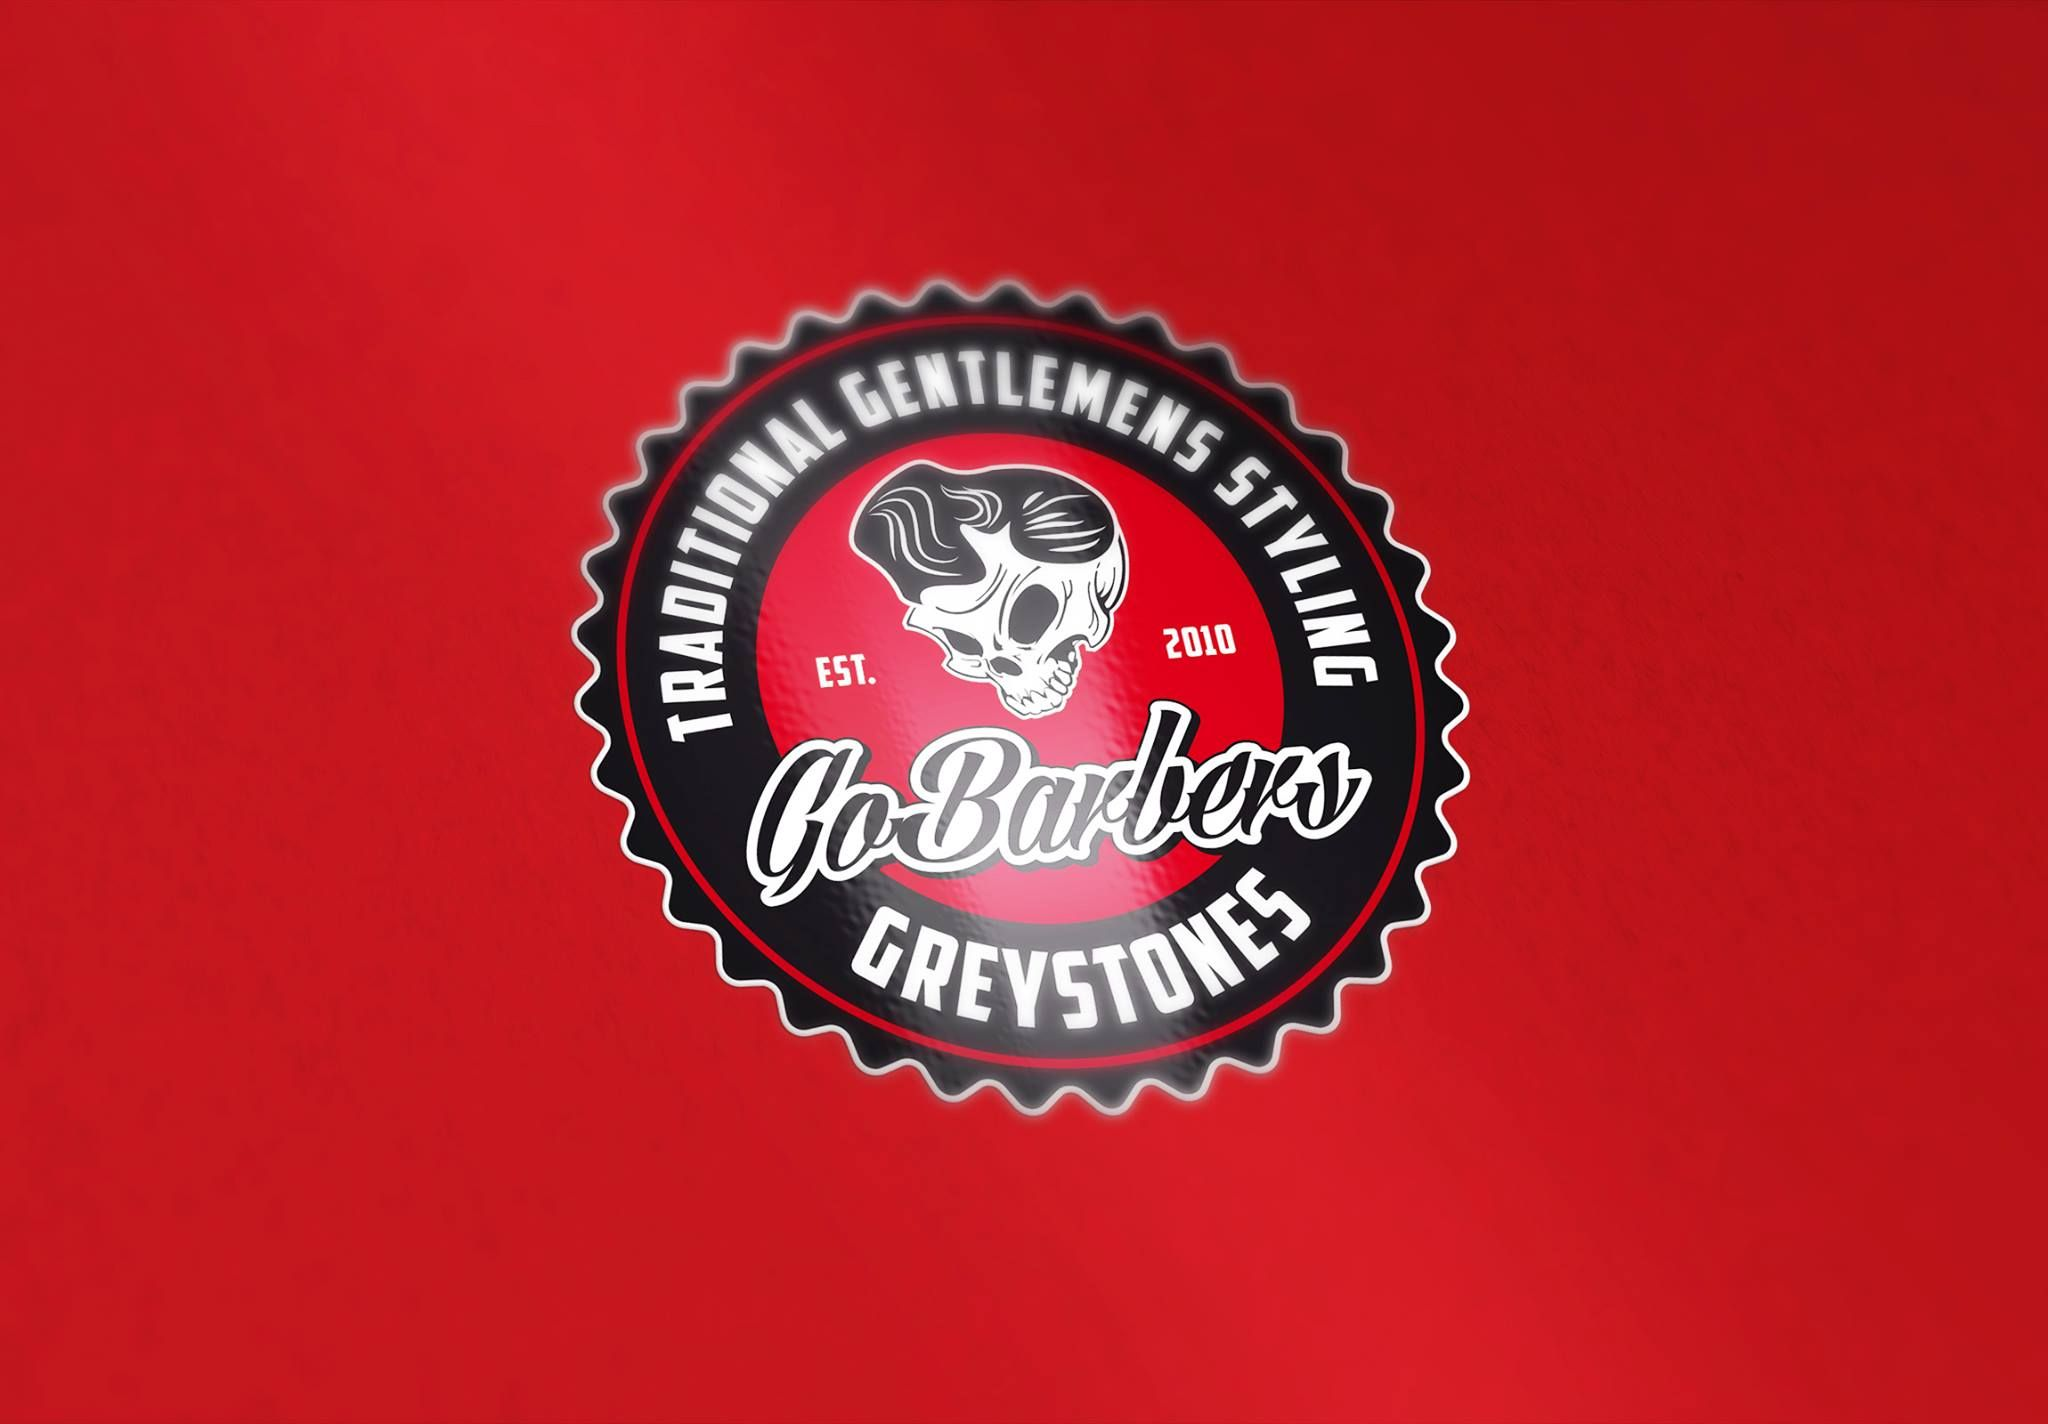 Vintage, retro logo design for Go Barbers Greystones. Copyright 2015. All rights reserved